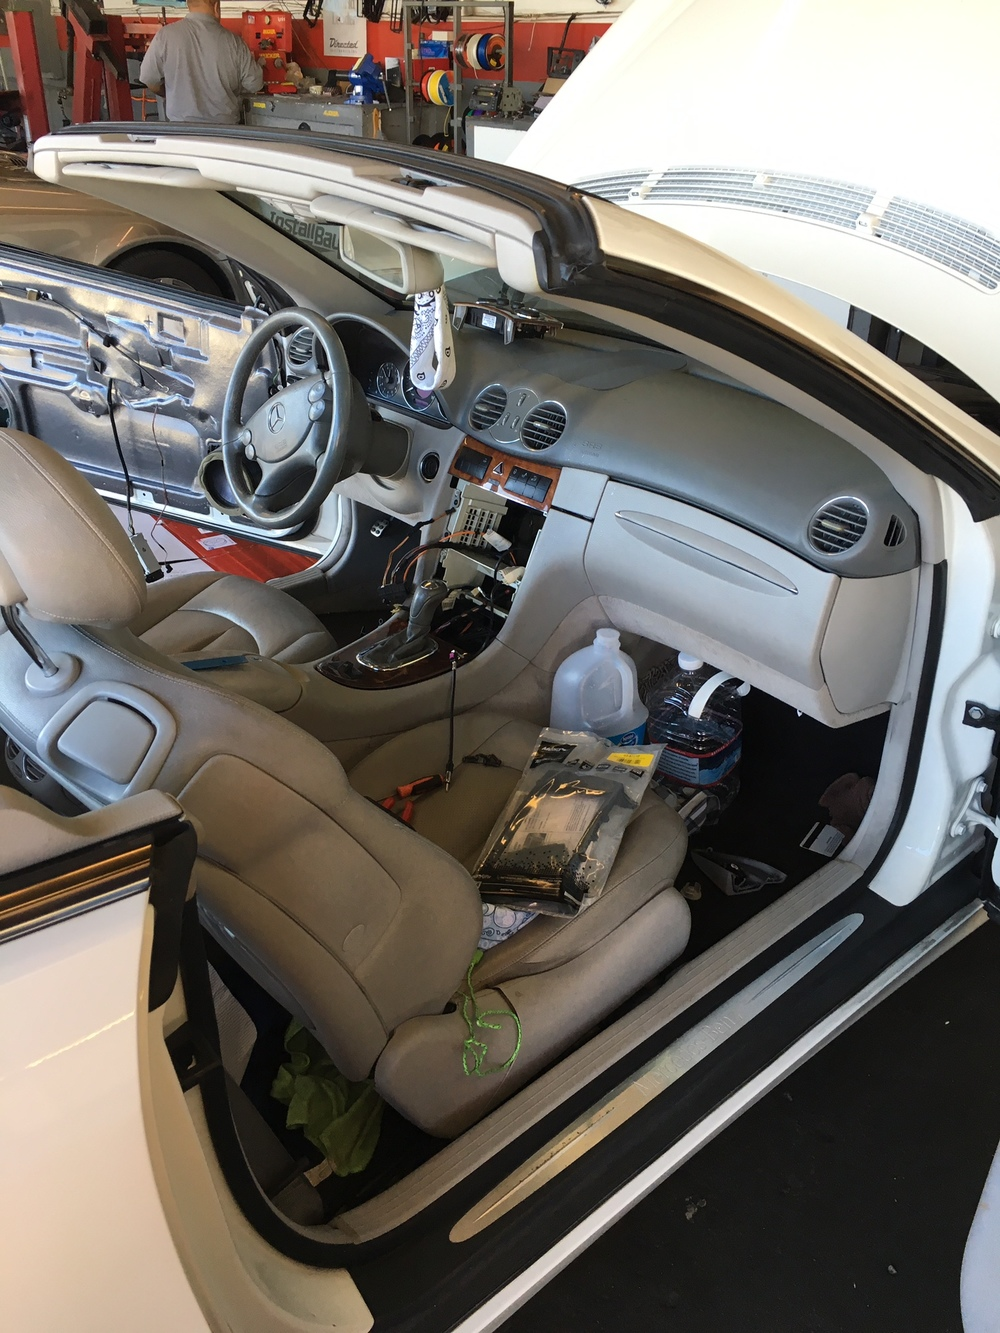 Audiosport offers custom car stereo installation